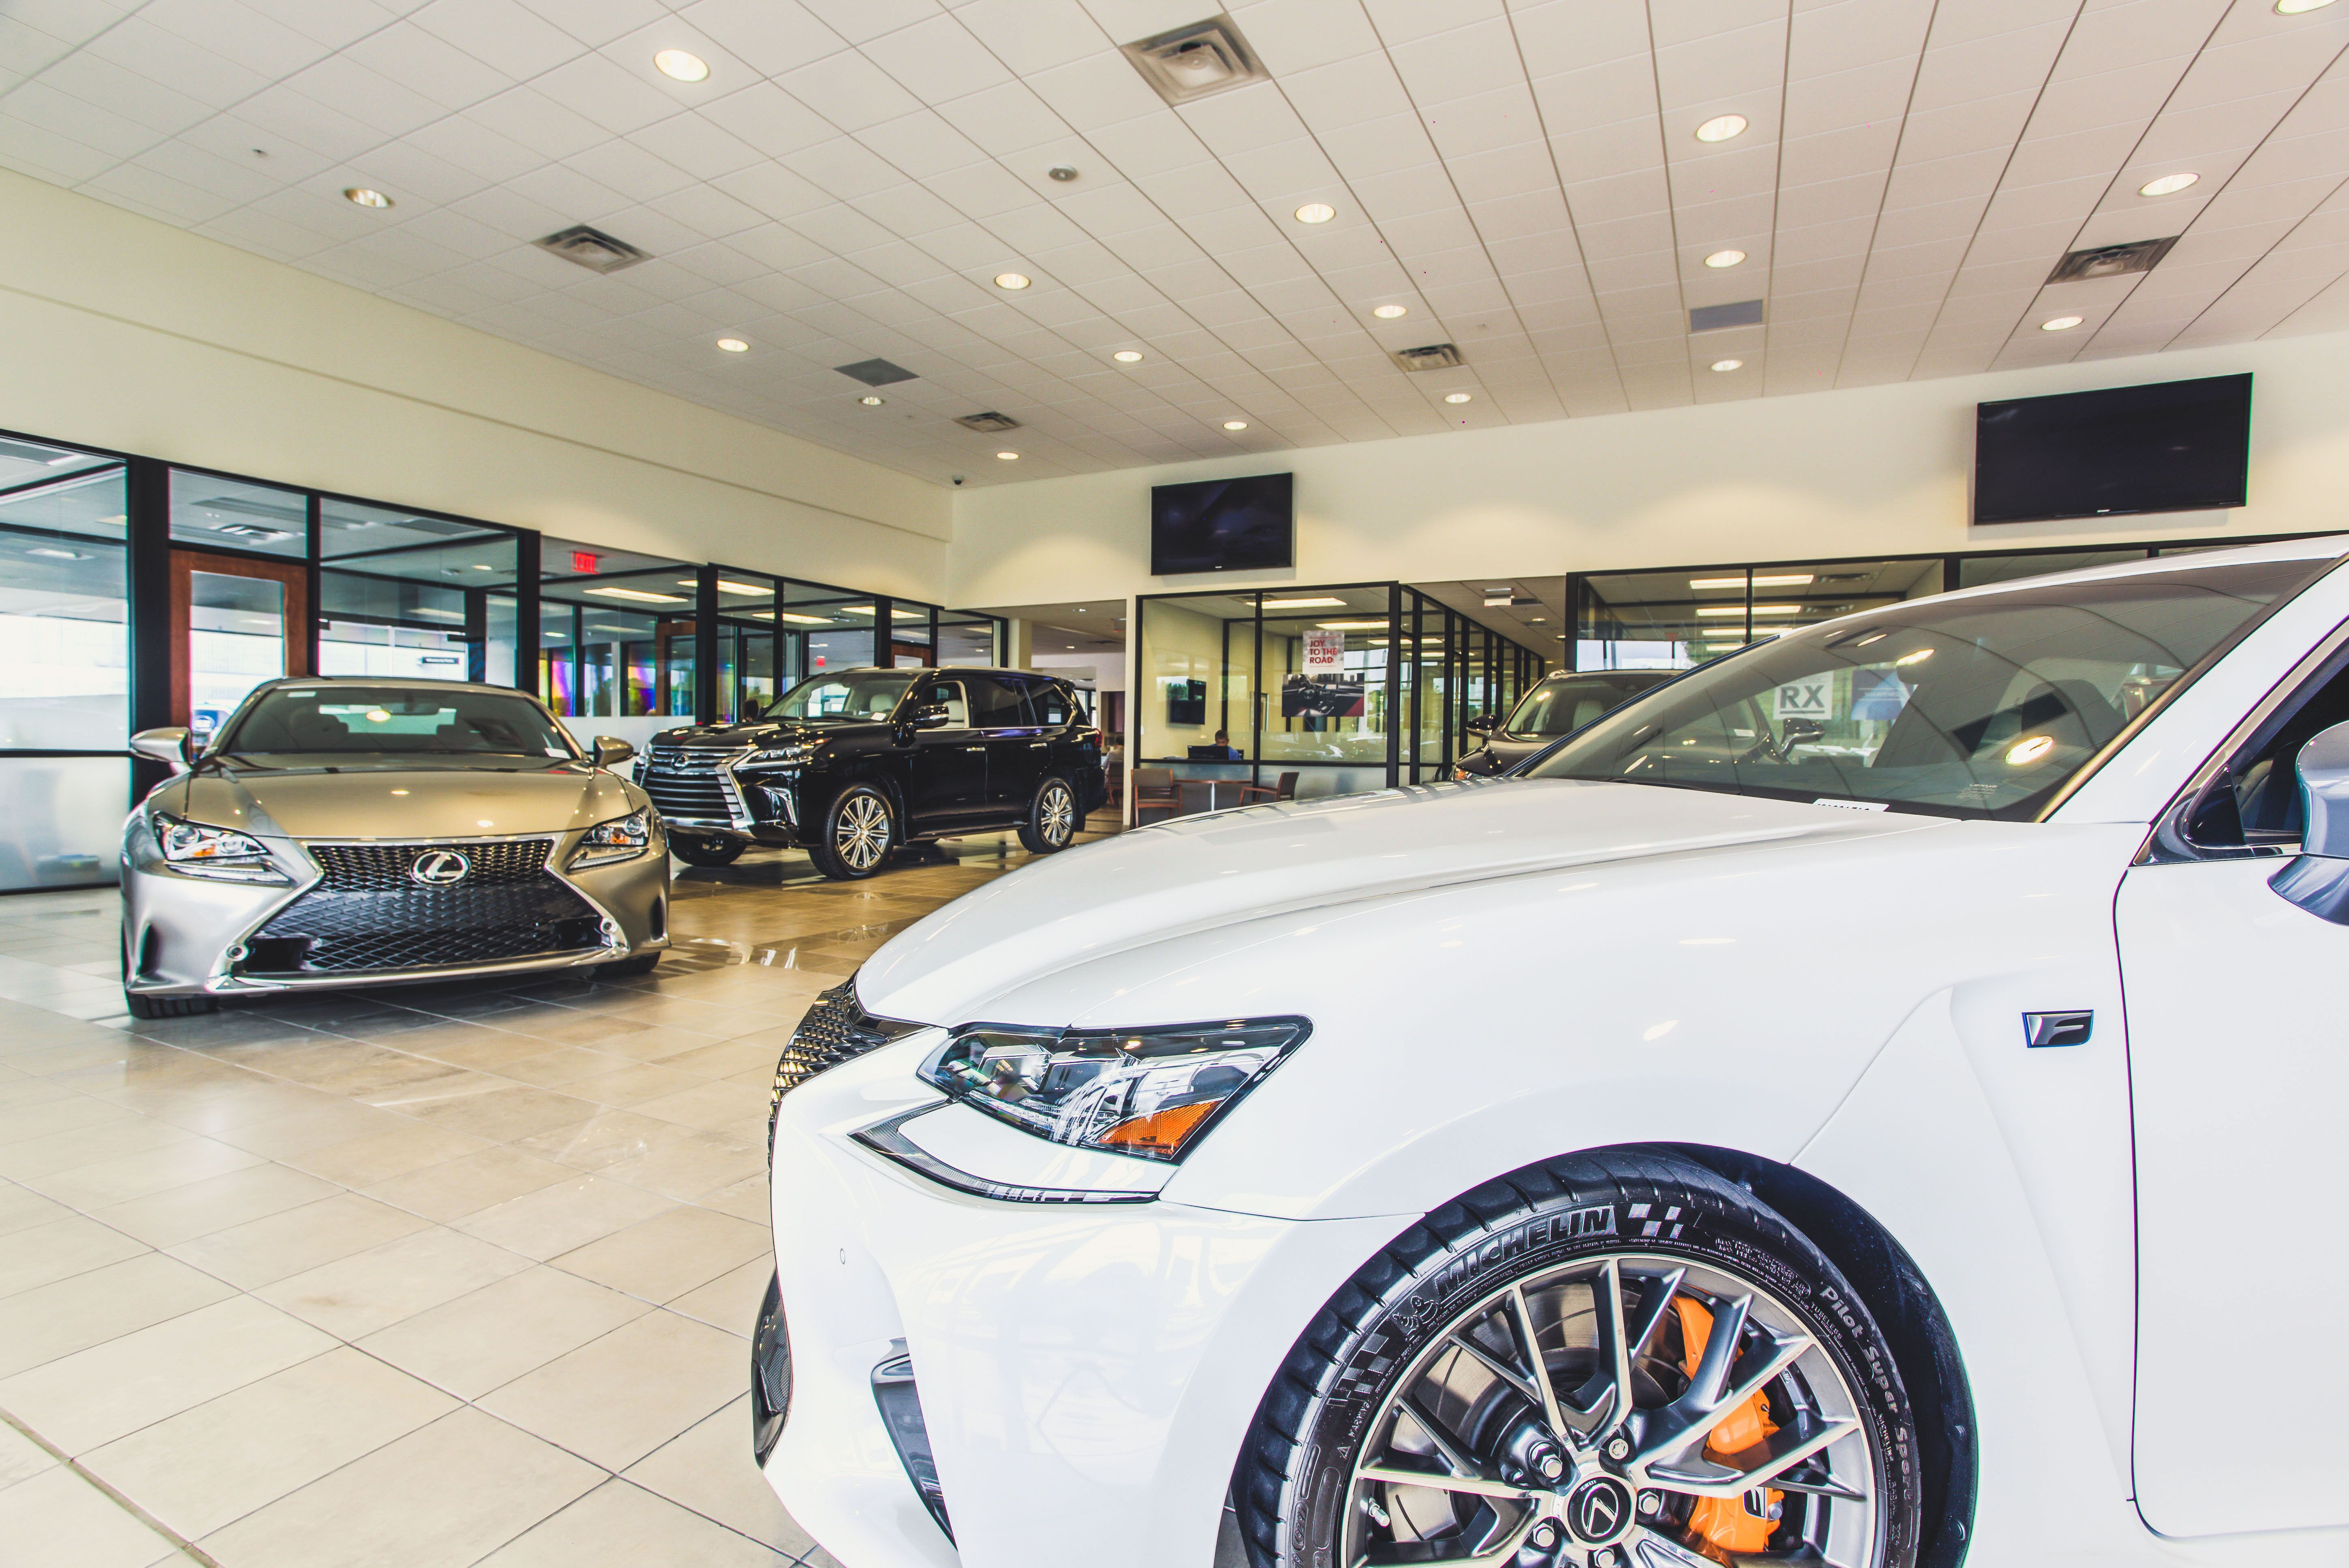 Our Mission Is To Make Every Customer A Customer For Life By Consistently Providing World Class Services Superb Customer New Lexus Lexus Dealership Lexus Cars